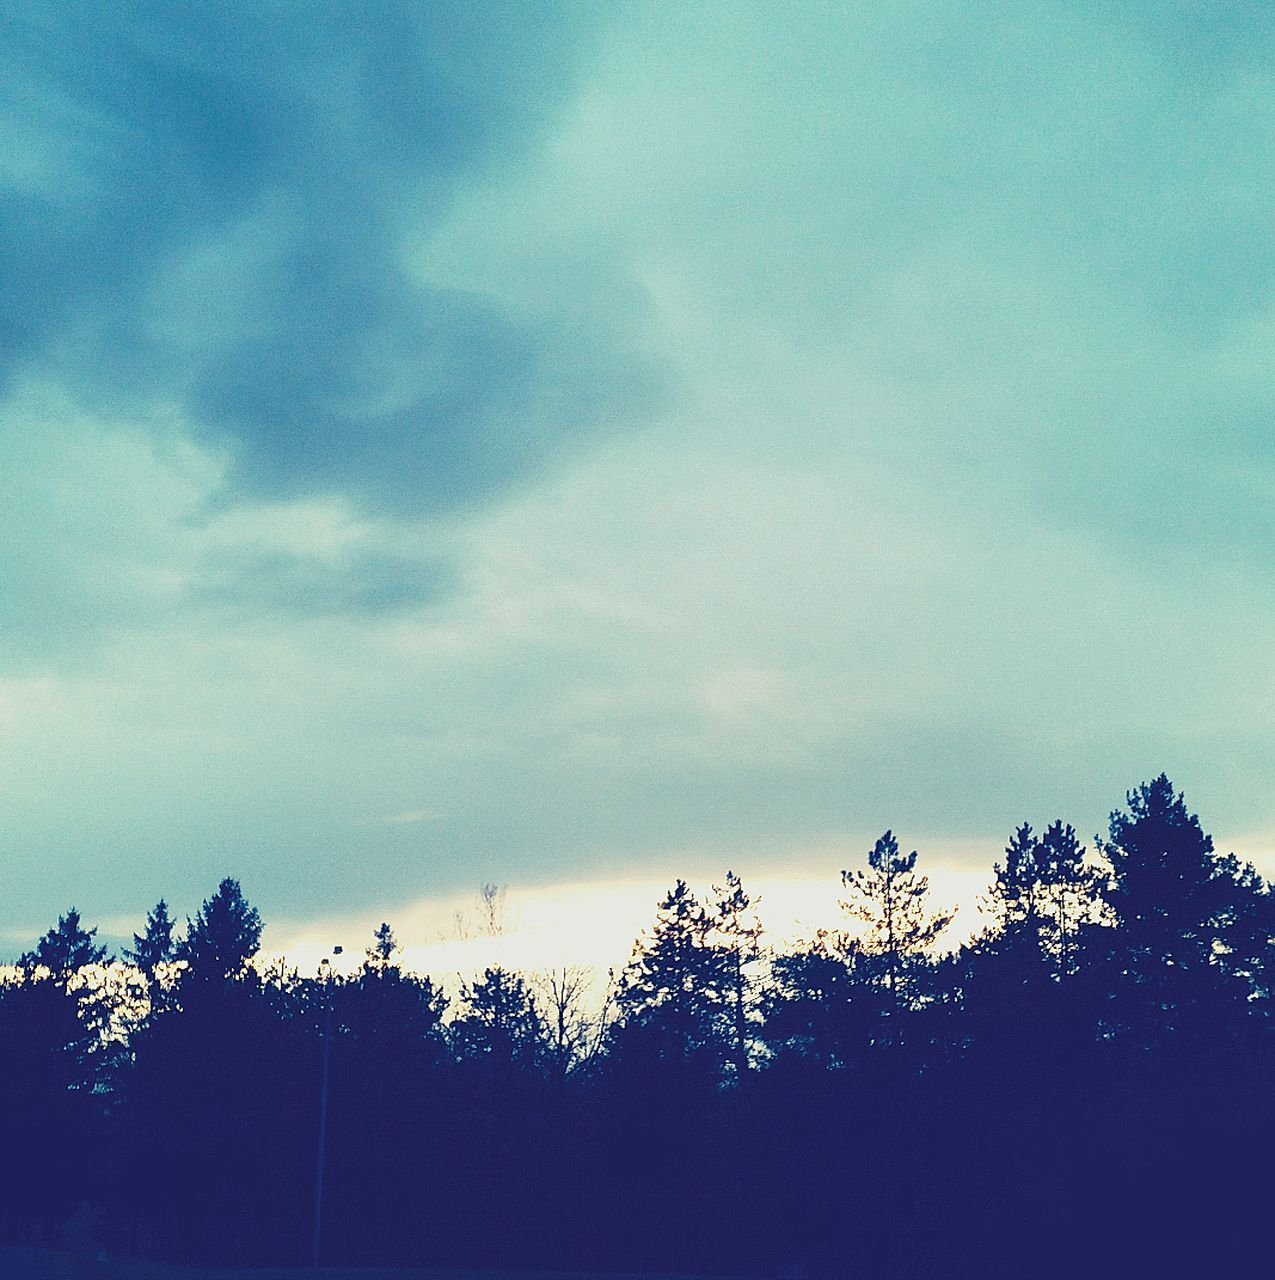 tree, sky, nature, no people, low angle view, beauty in nature, day, outdoors, scenics